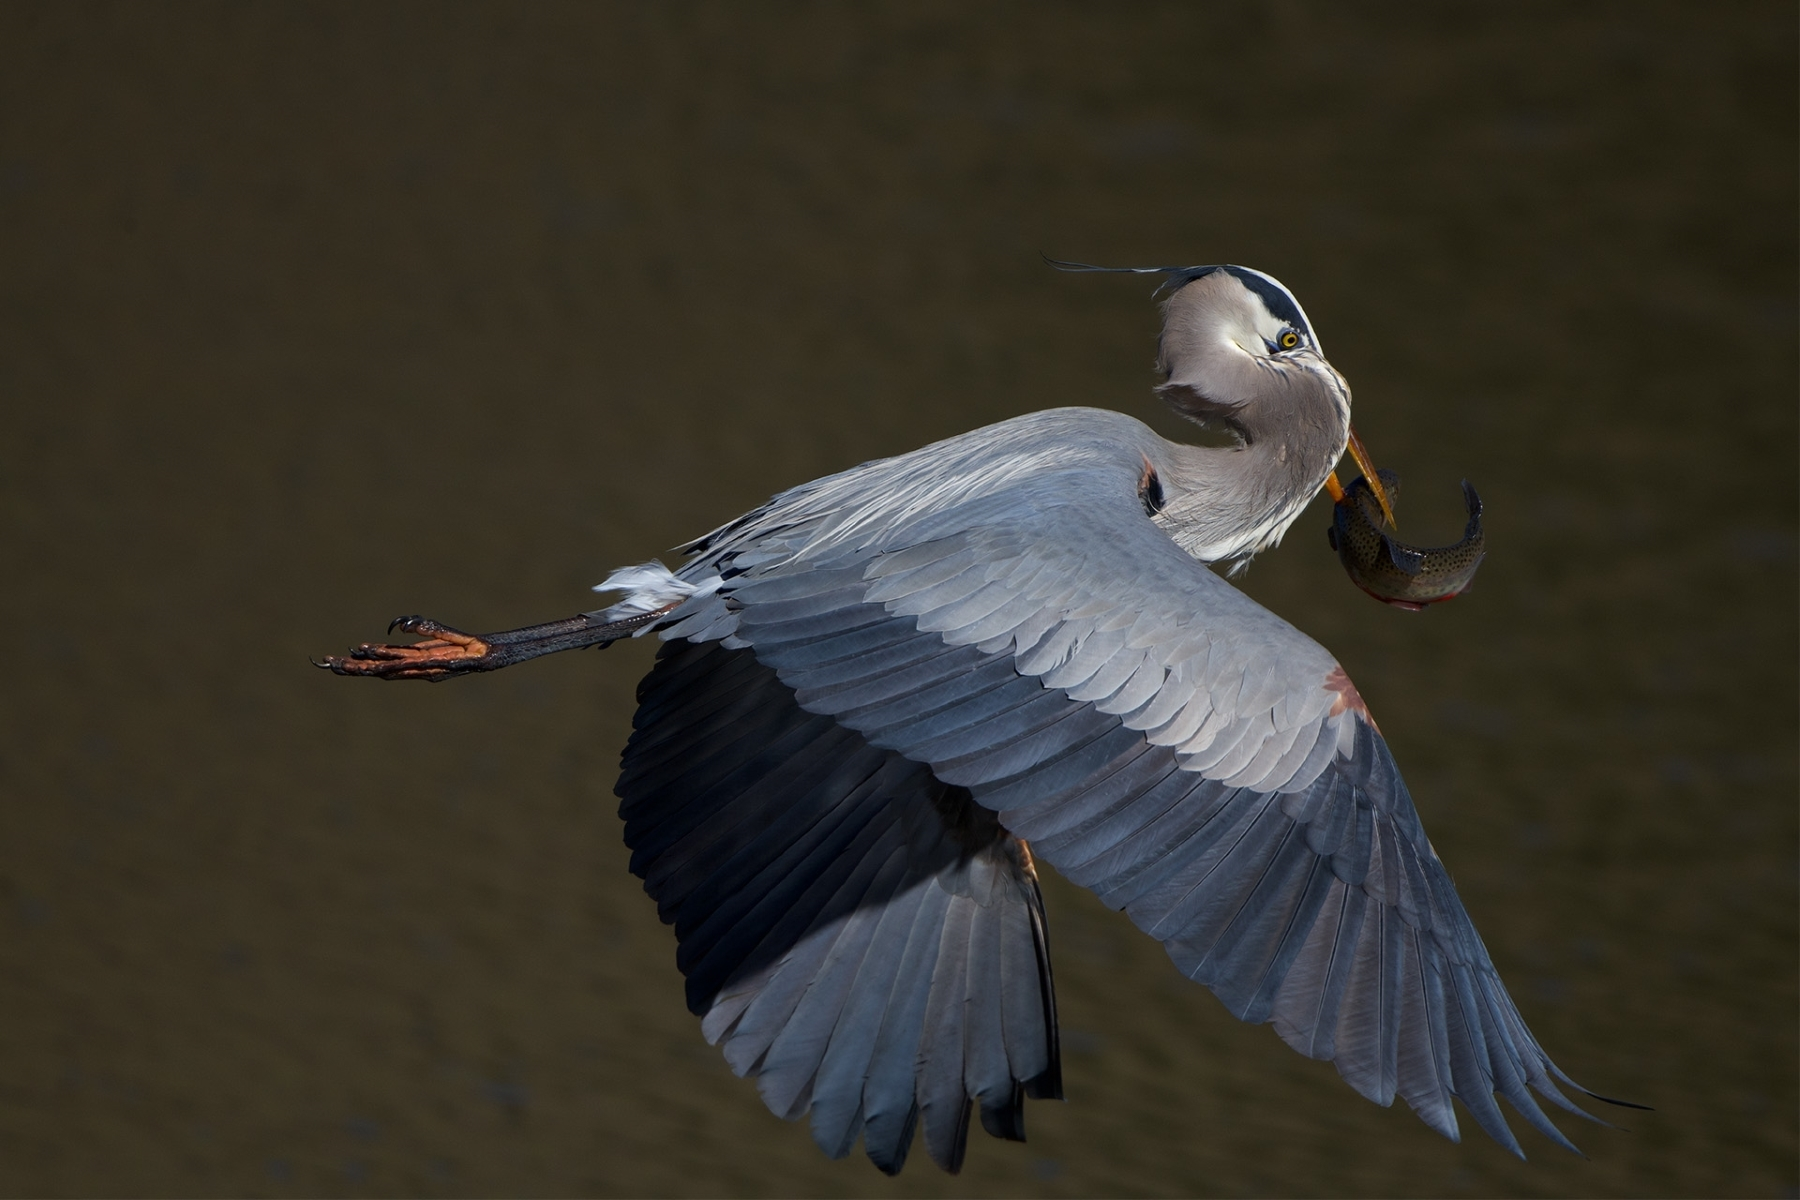 Great-Blue-Heron-in-lift-off-with-its-speared-Rainbow-Trout-by-the-lakeshore-at-Ed-Levin-C-NB-1-Place-by-may-chen-FR